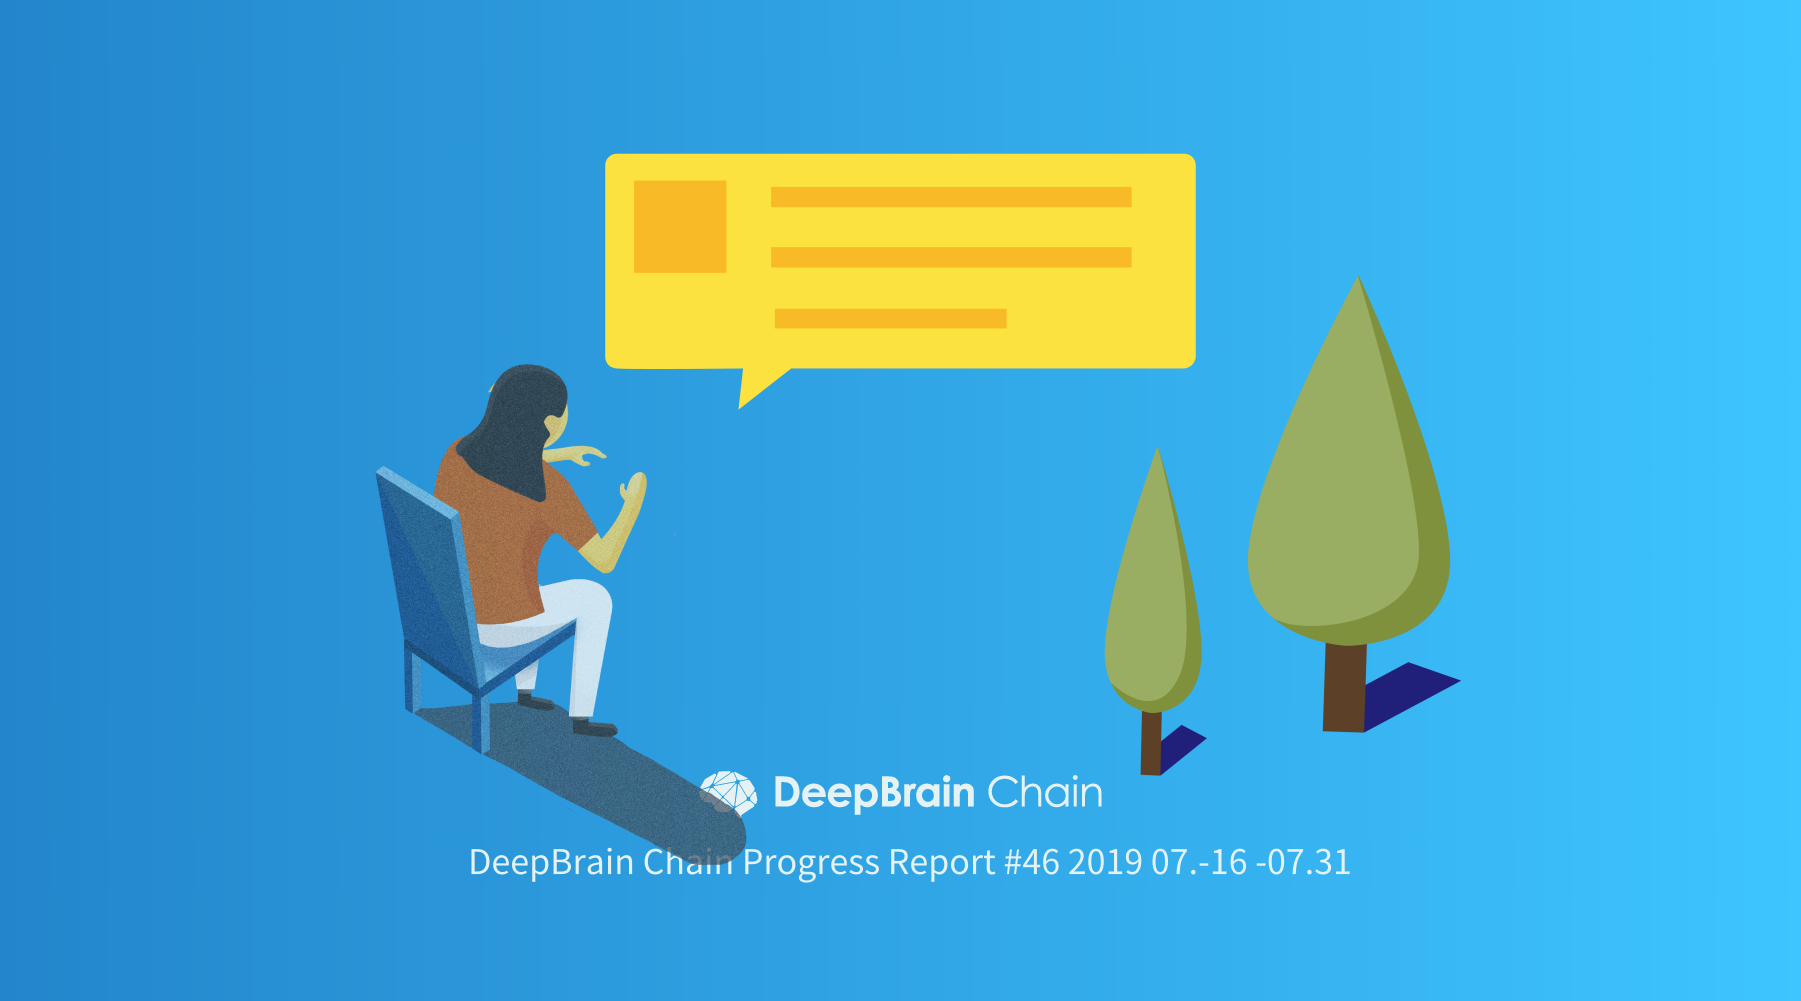 DeepBrain Chain Progress Report #46 - DeepBrain Chain - Medium